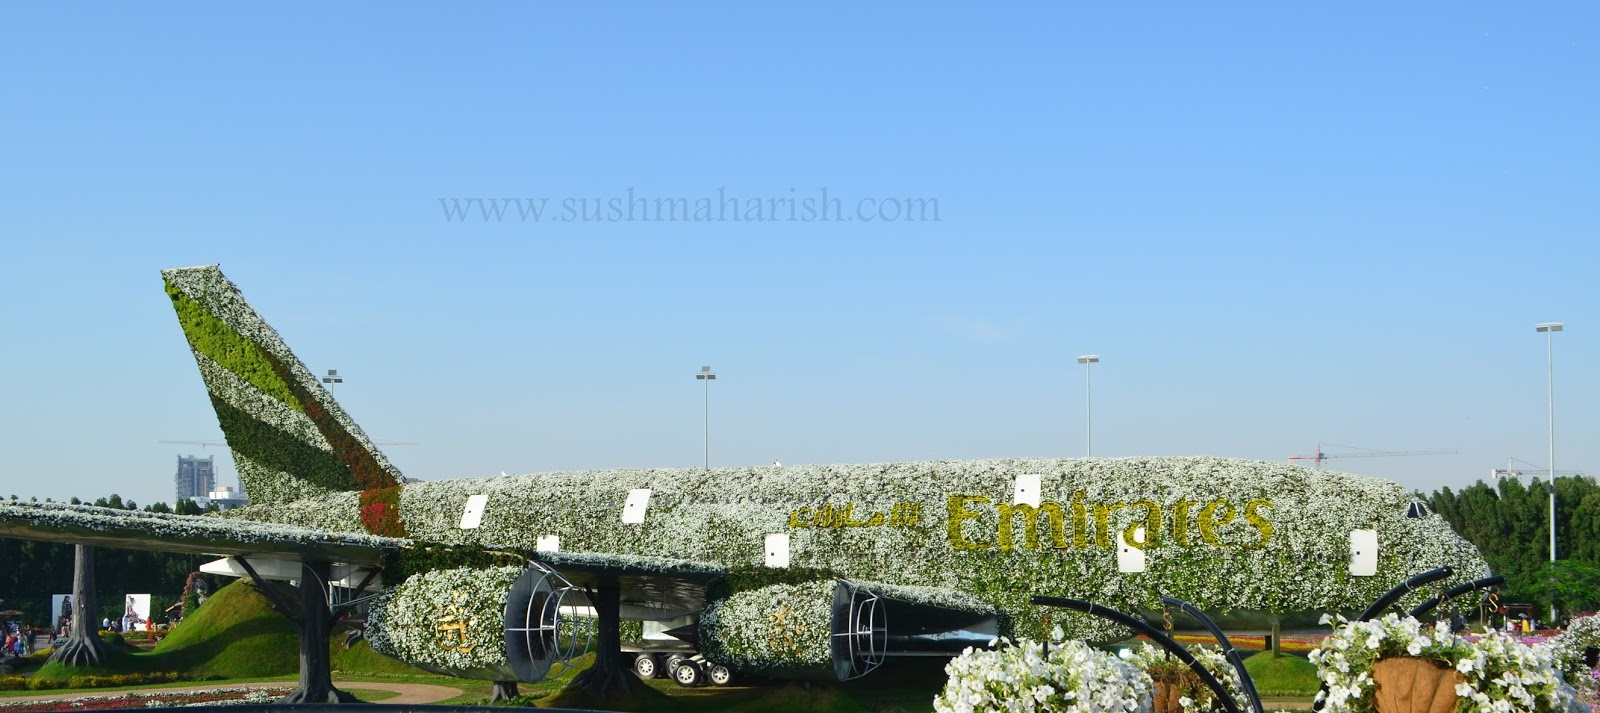 Exploring Beyond The Skyscrapers. Largest Flower Garden Of The World - Miracle Garden Dubai. 30